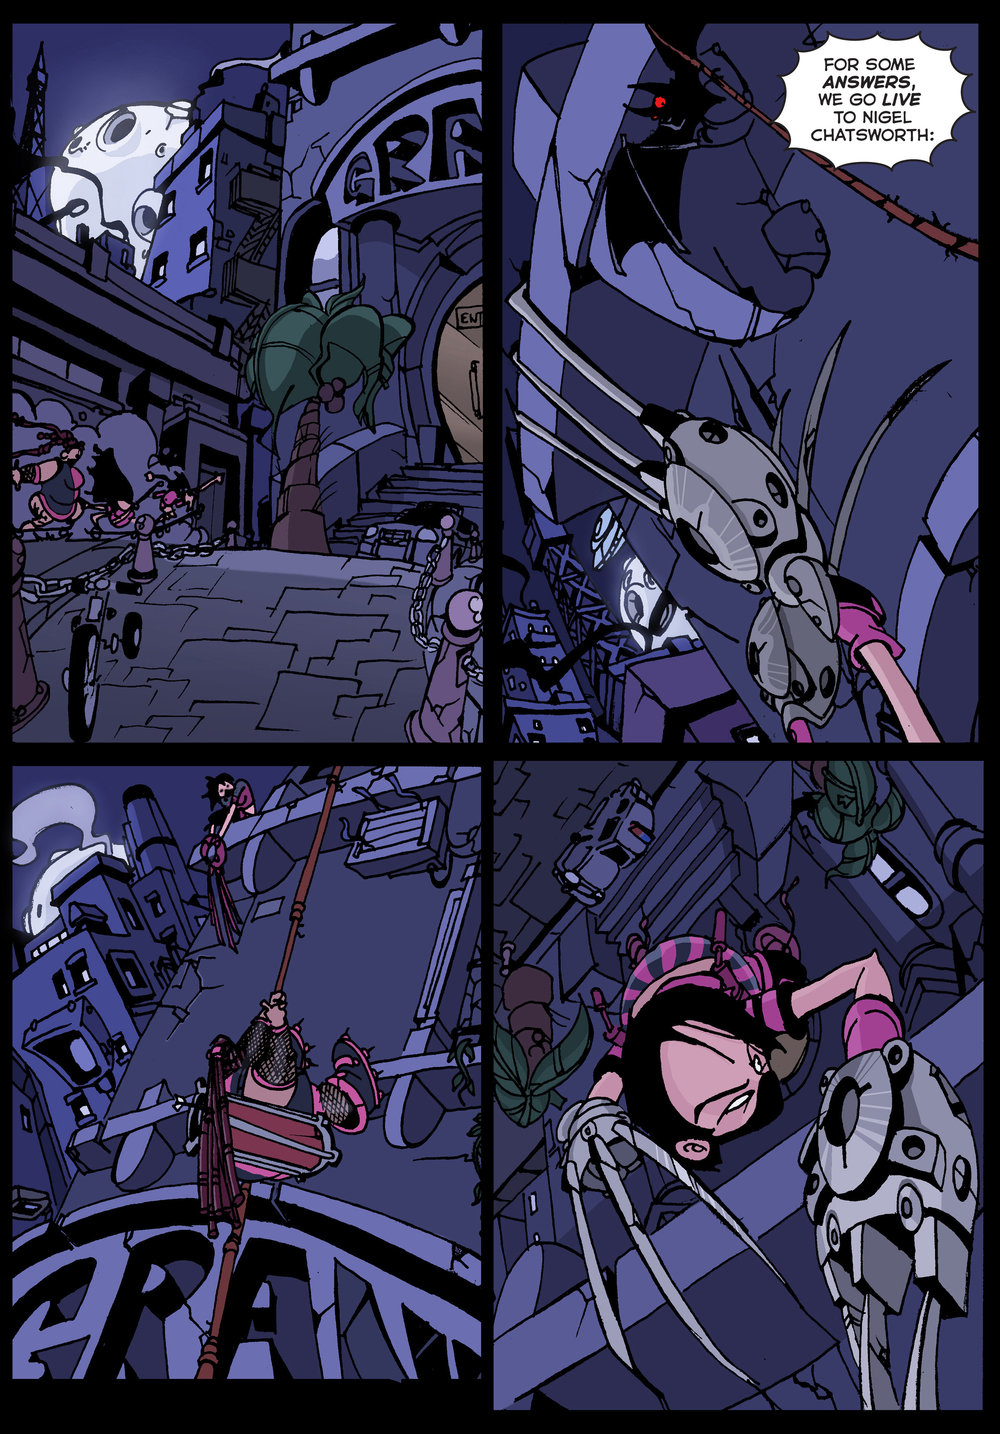 Pink Power 1 page 19.jpg